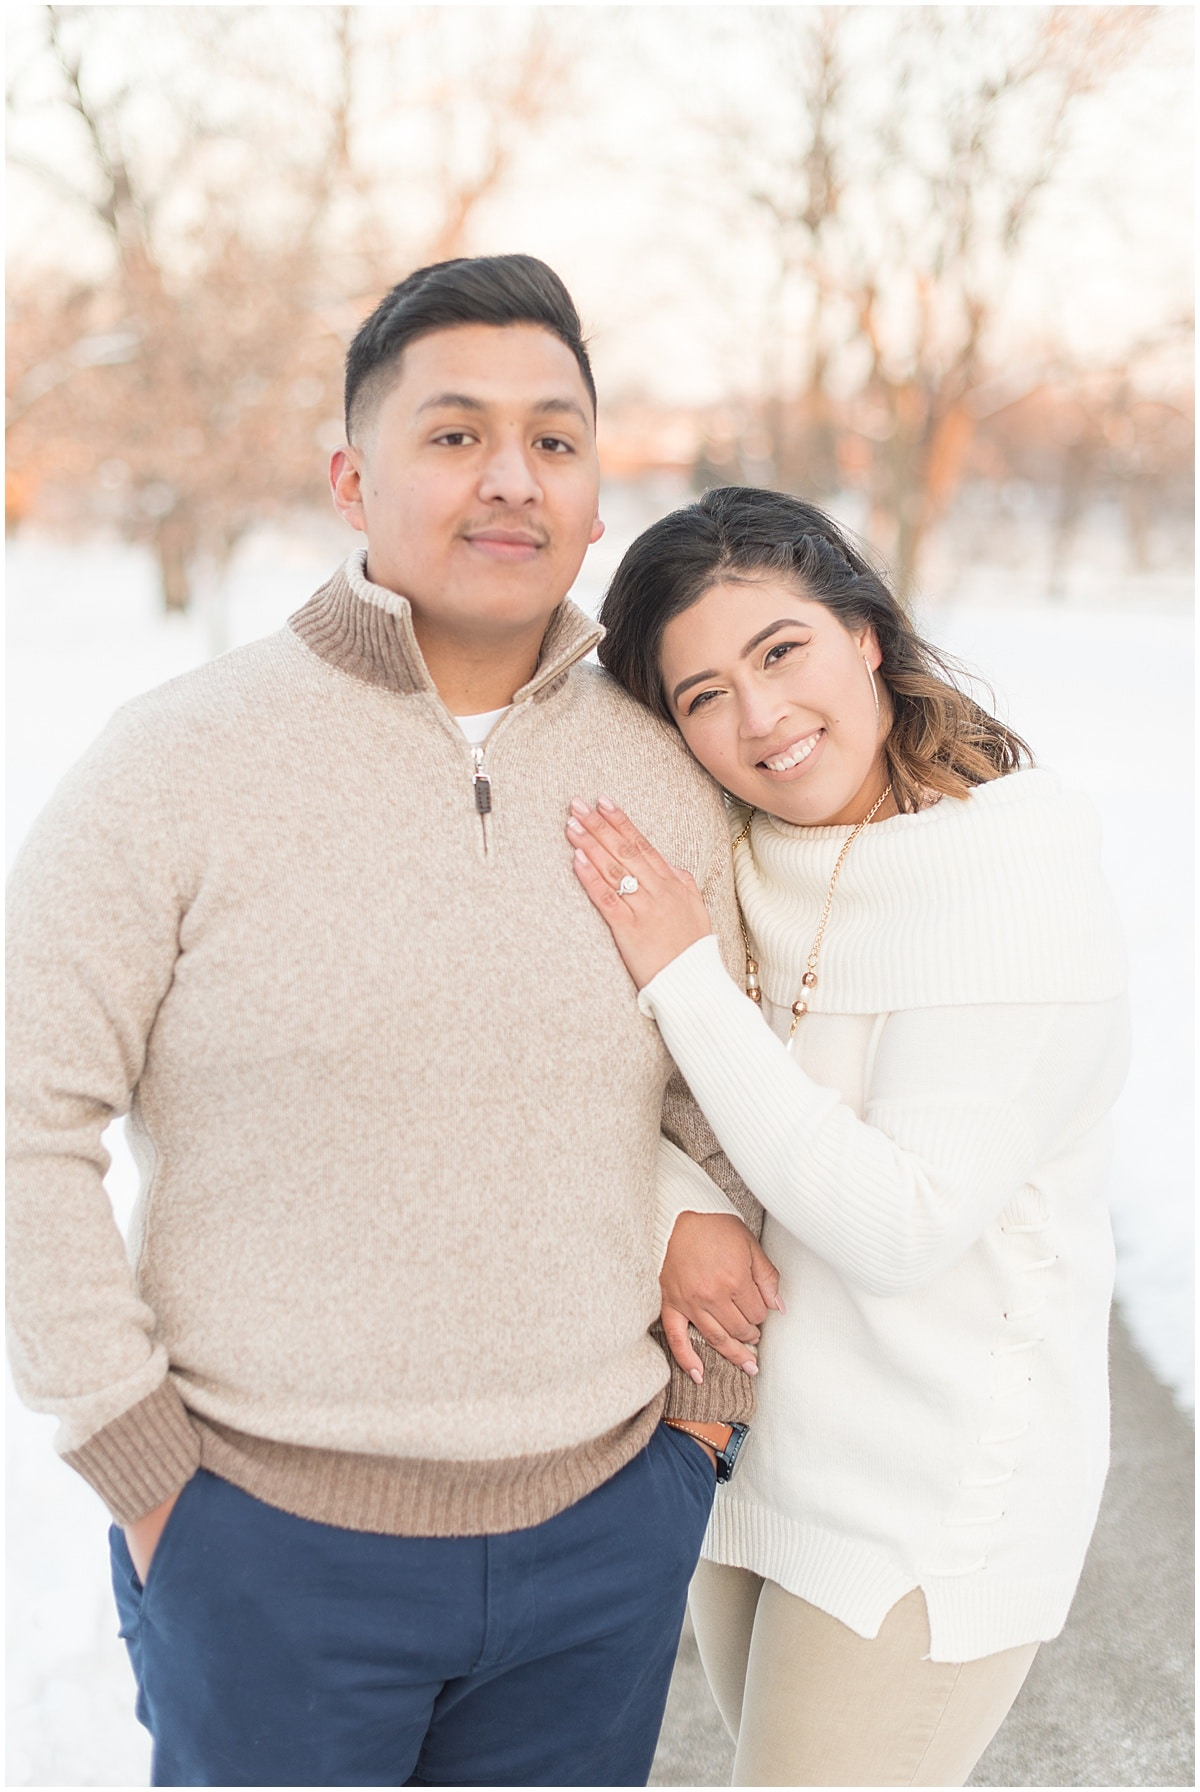 Jose & Carolina - Engagement Photos in Downtown Lafayette Indiana23.jpg